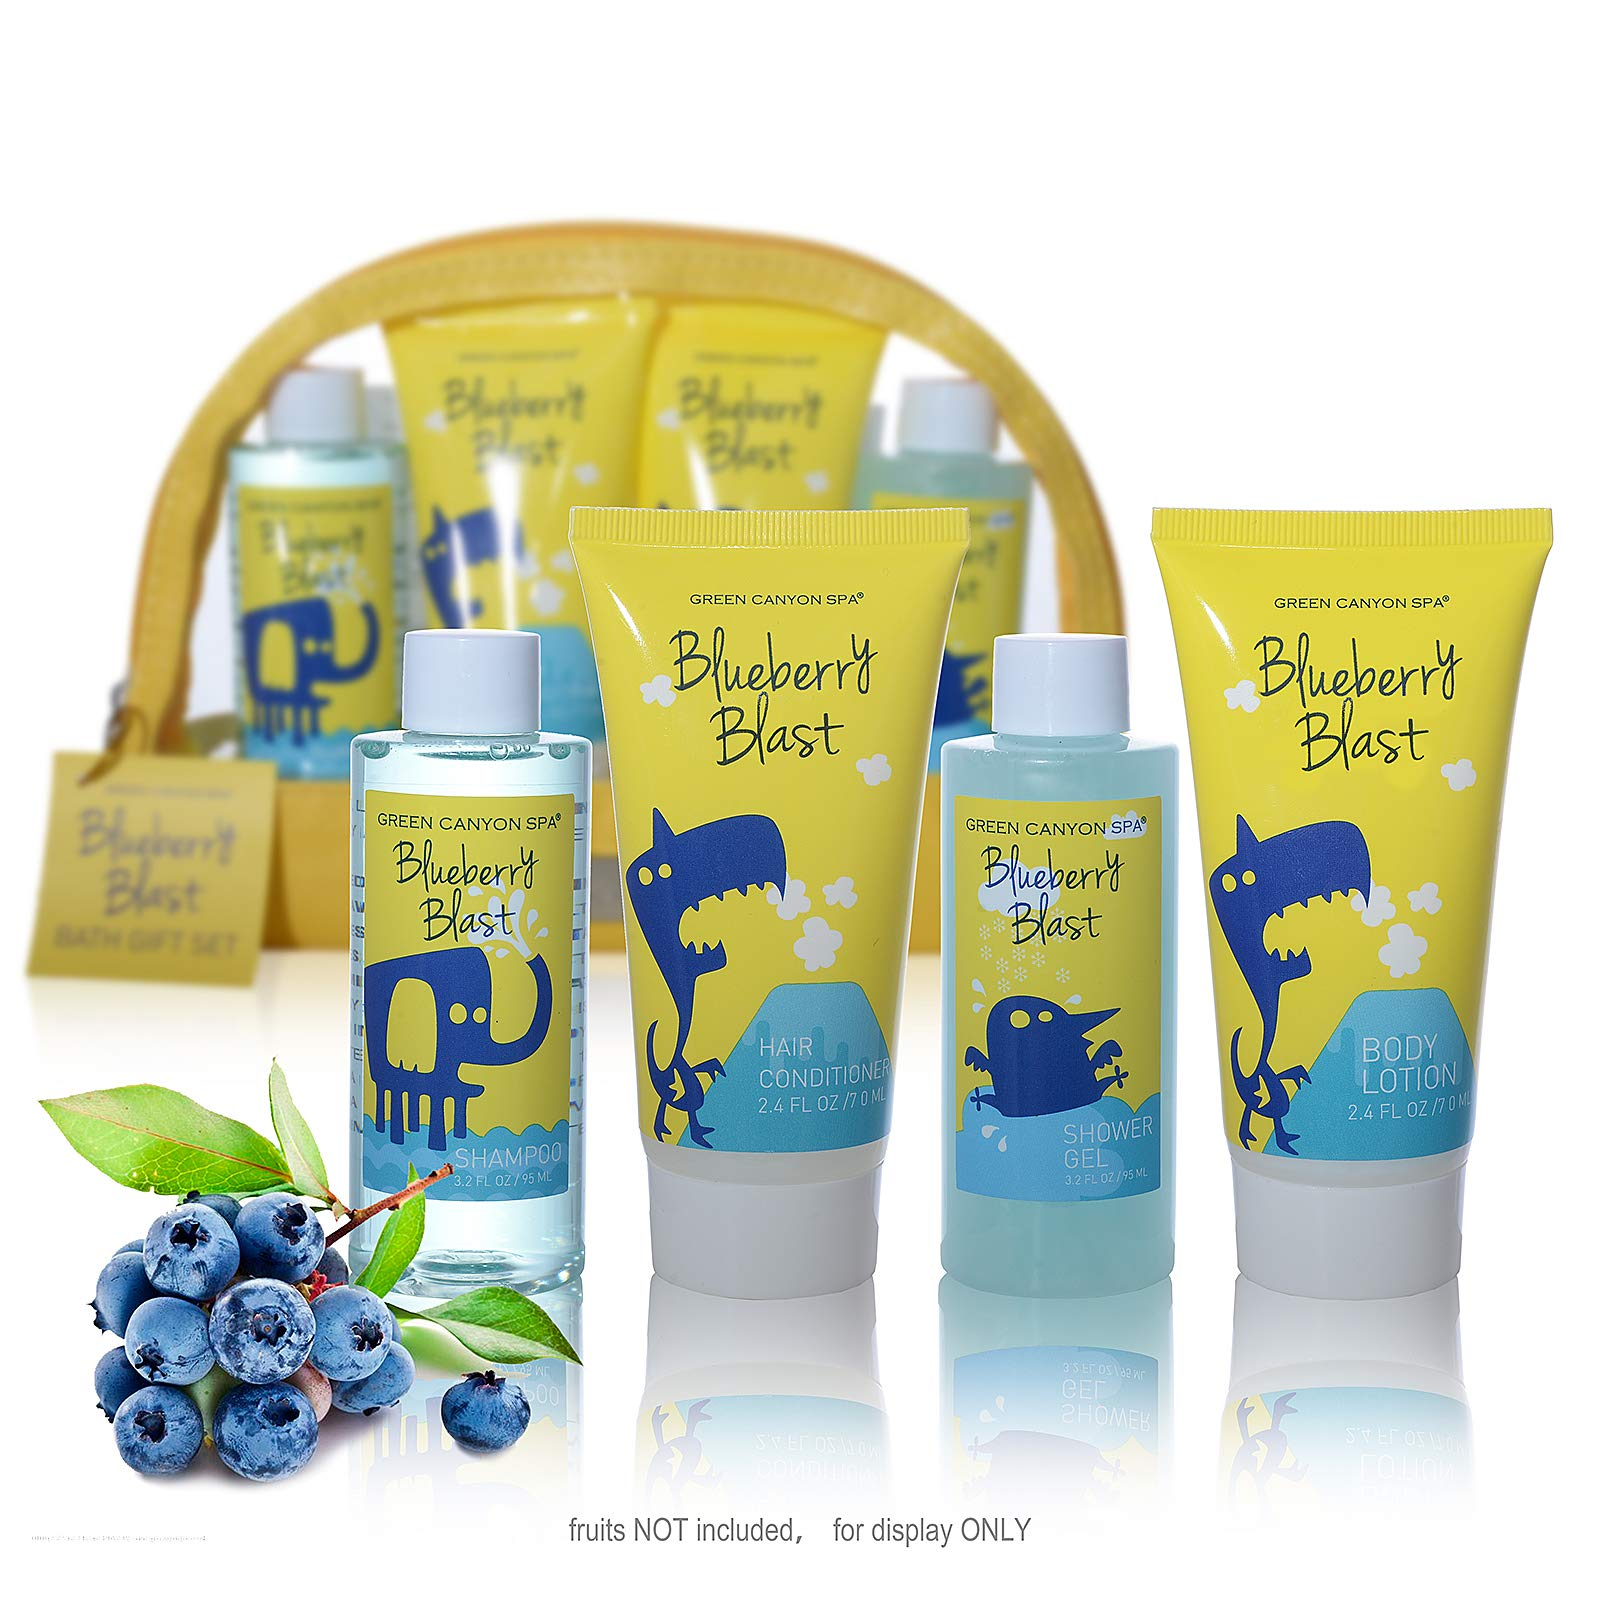 Premium TSA Approved Bath and Body Travel Set for Kids / Youth in Blueberry Blast – Lush Body Lotion, Shower Gel, Shampoo and Conditioner in PVC Bag – perfect travel kit in Convenience